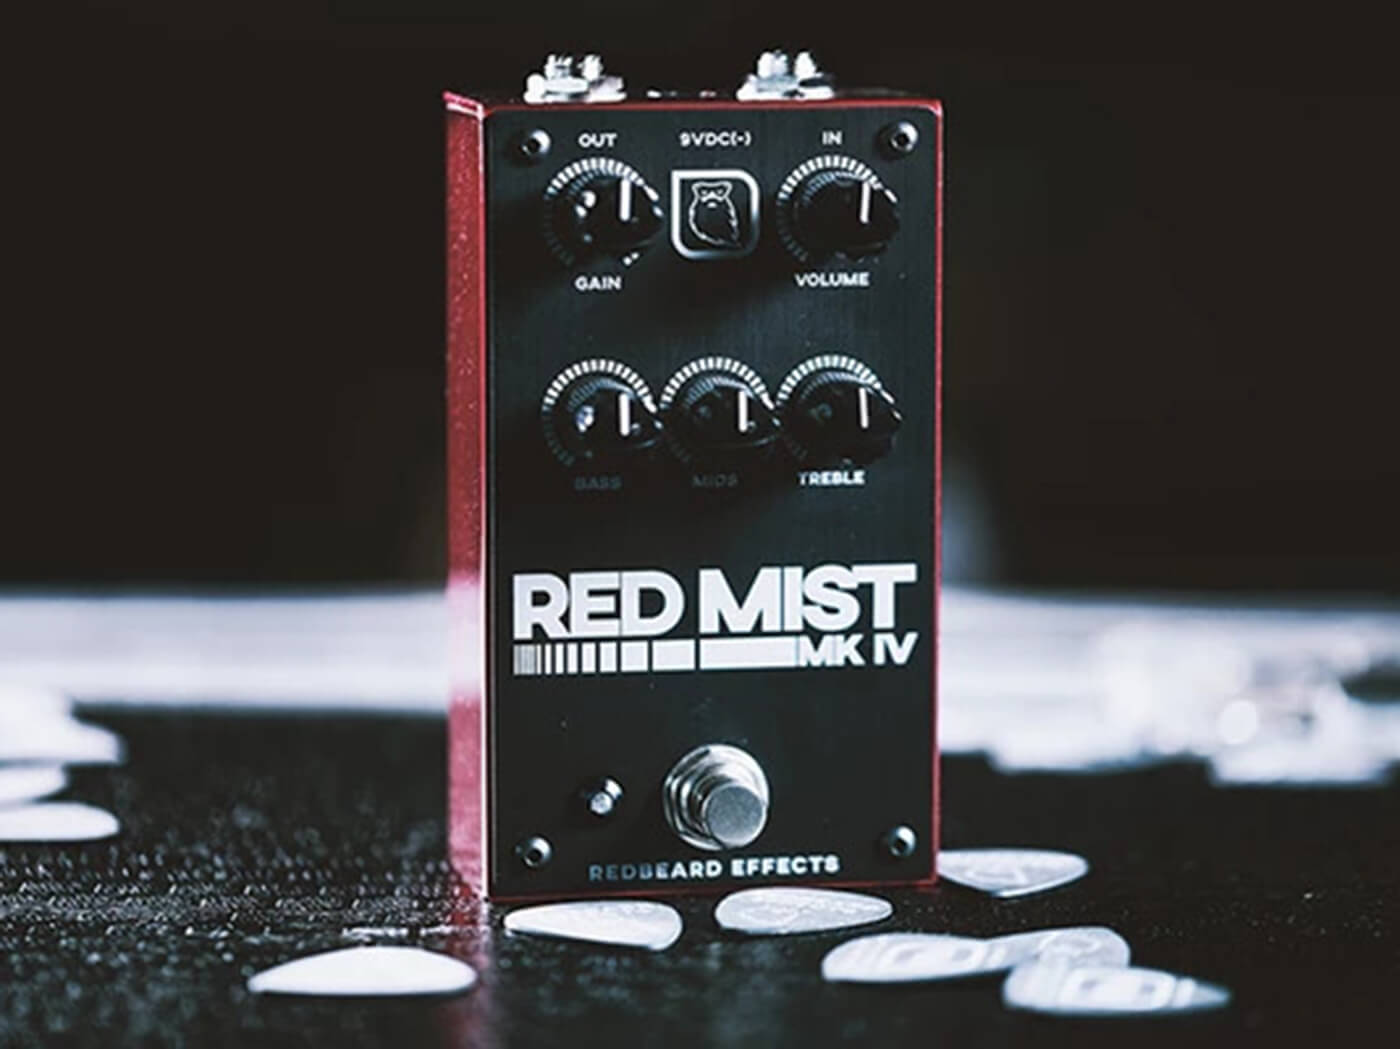 Redbeard Effects Red Mist MKIV